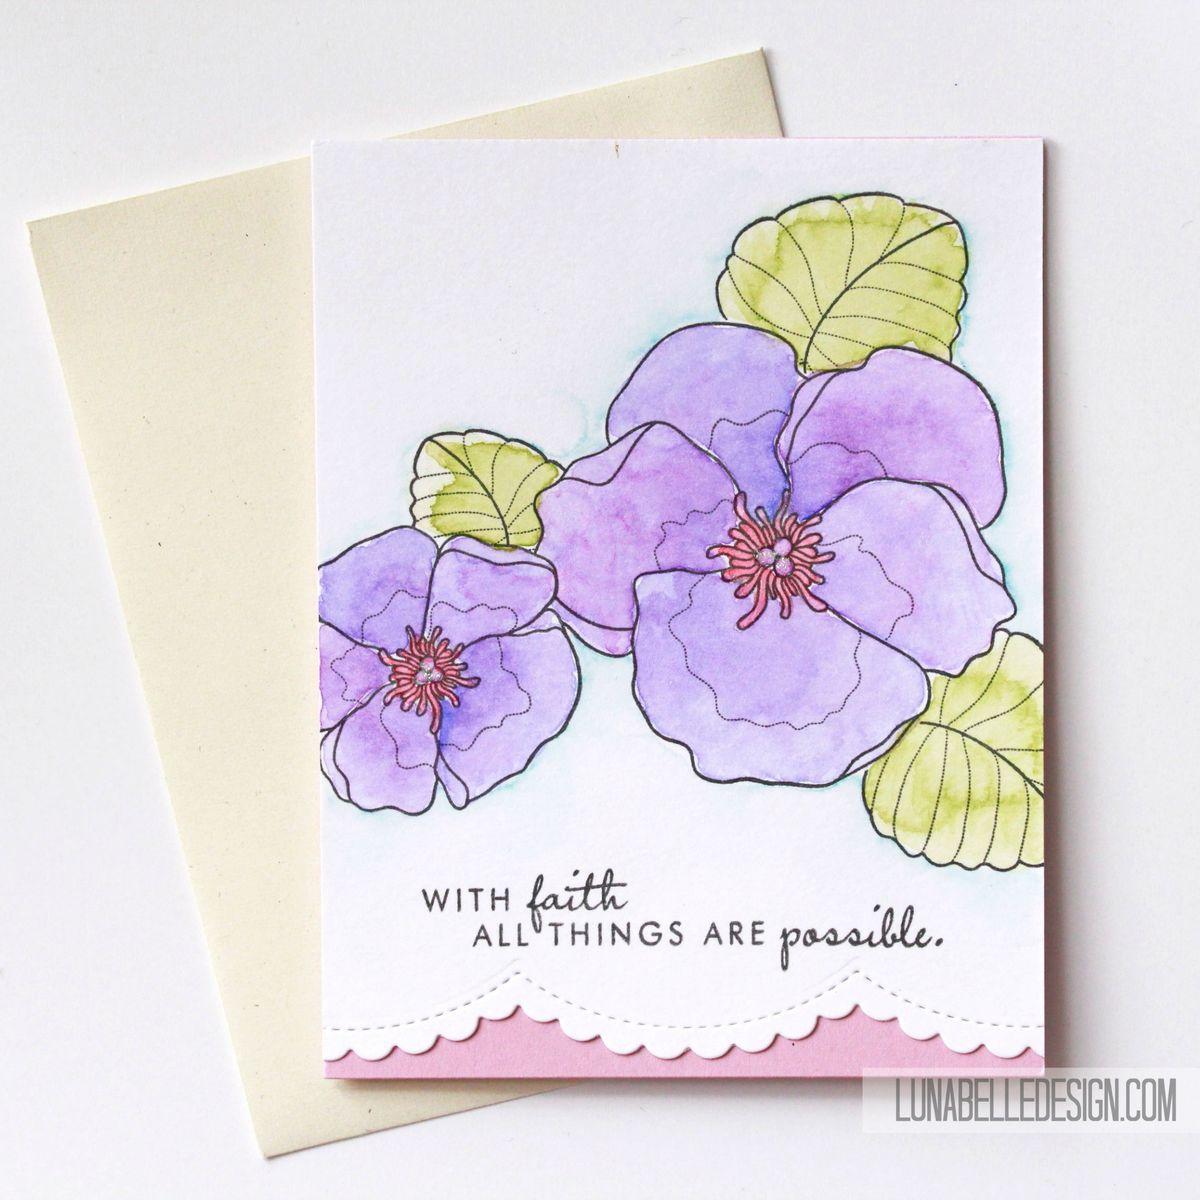 Sympathy cards collection luna belle design sympathy cards thecheapjerseys Images